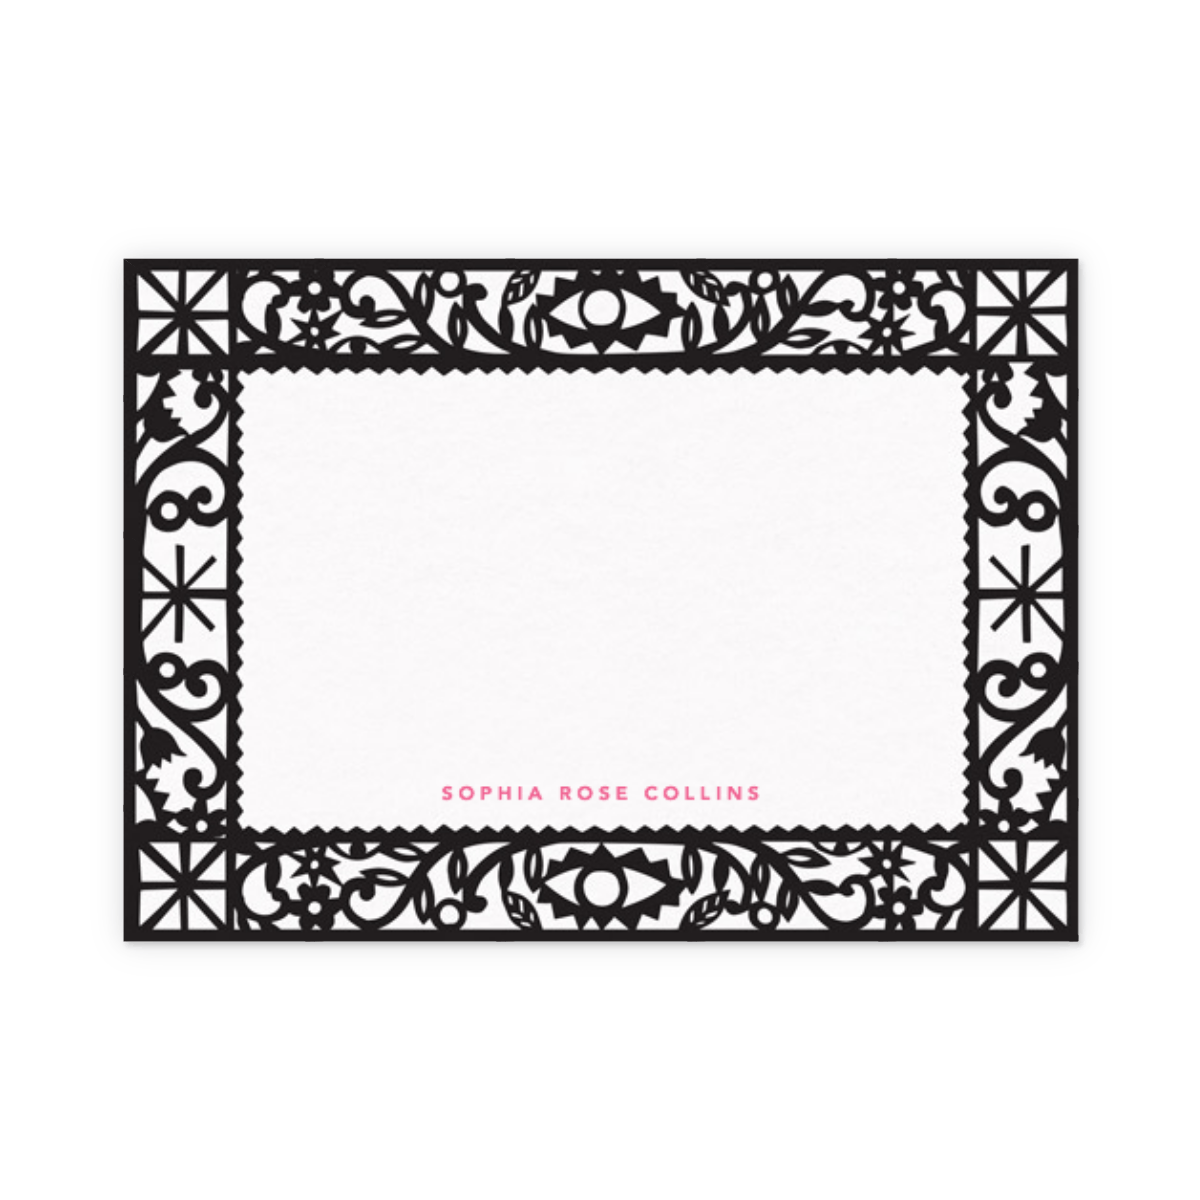 Https%3a%2f%2fwww.papier.com%2fproduct image%2f46525%2f10%2fintricate frame 11473 front 1536846367.png?ixlib=rb 1.1